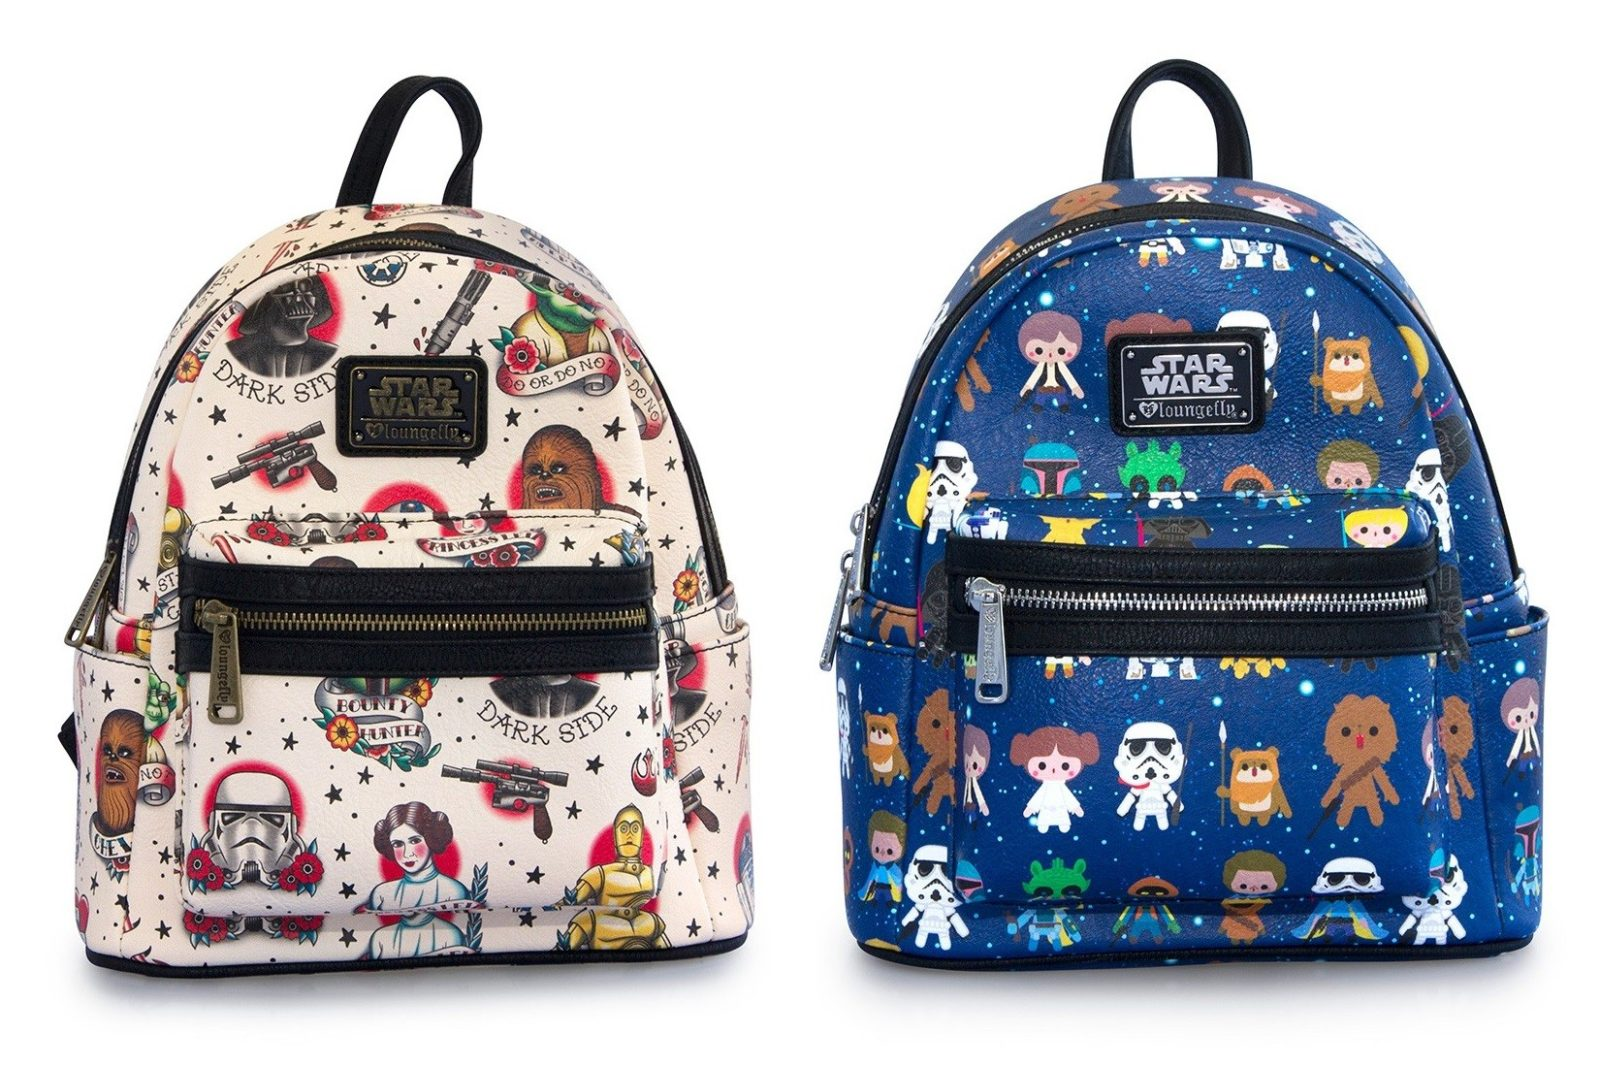 New Star Wars backpacks at Loungefly - The Kessel Runway 29bc28e2c1b9e